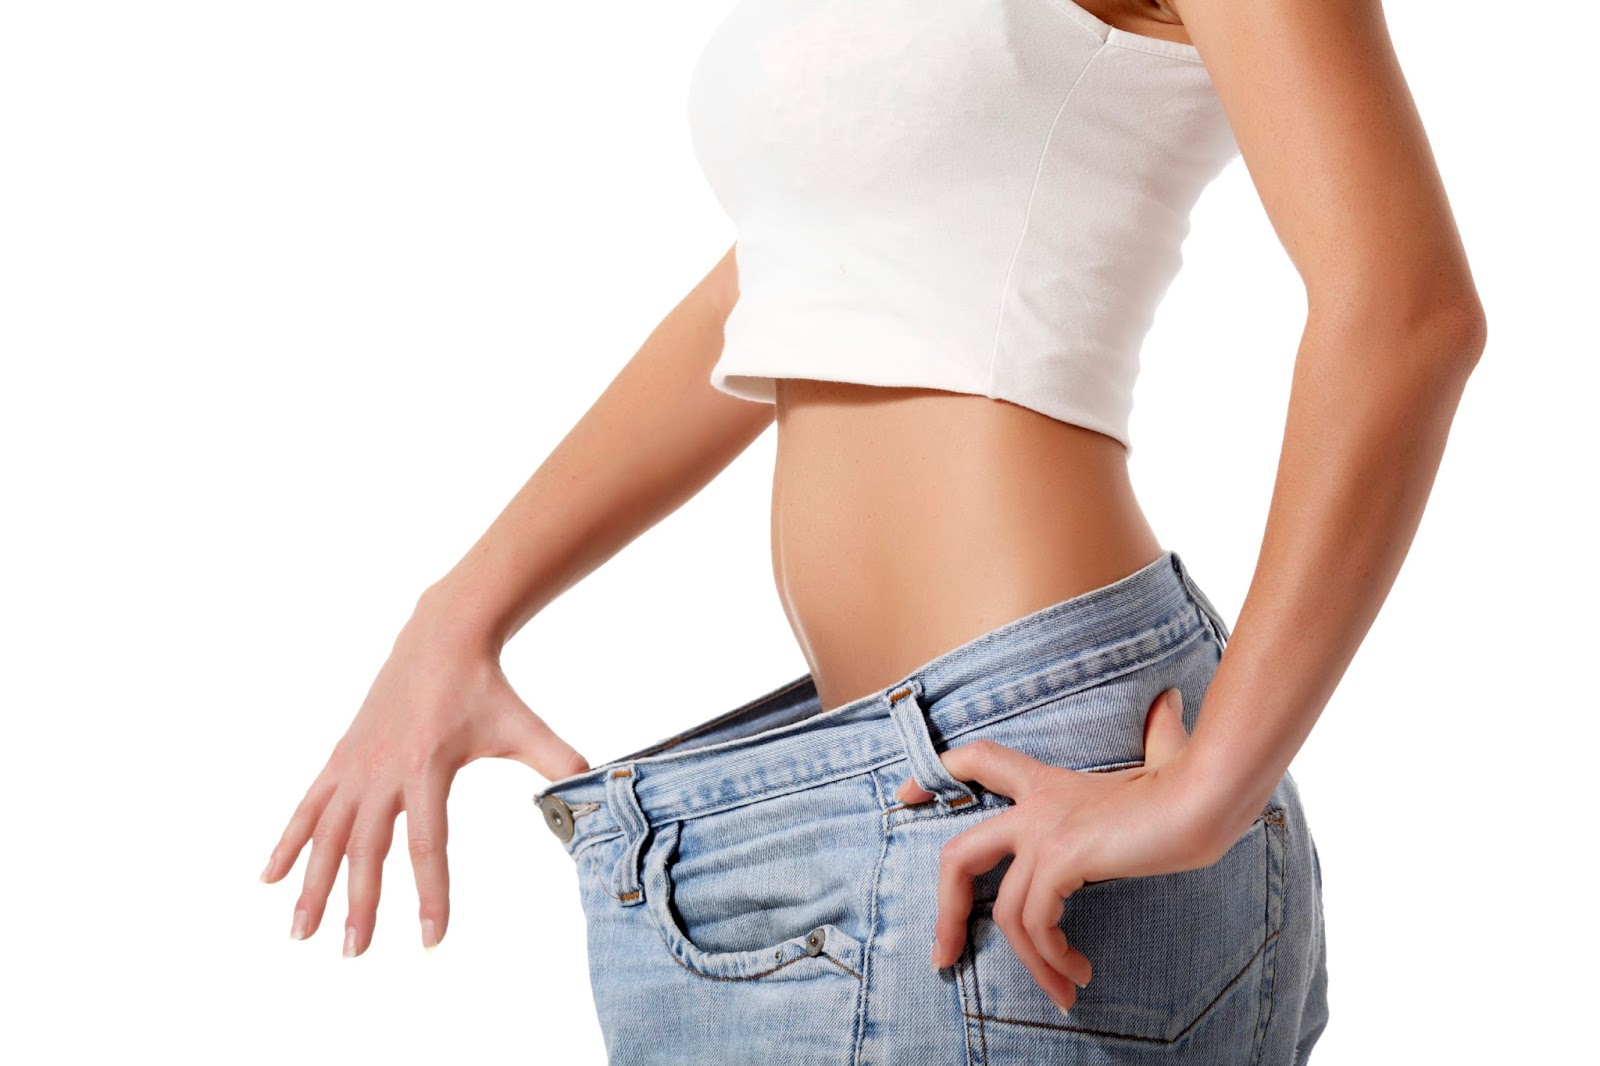 How To Lose Weight Fast Apple Write Down Everything That You Eat Or Drink  That Contains Calories, Even If It's Just